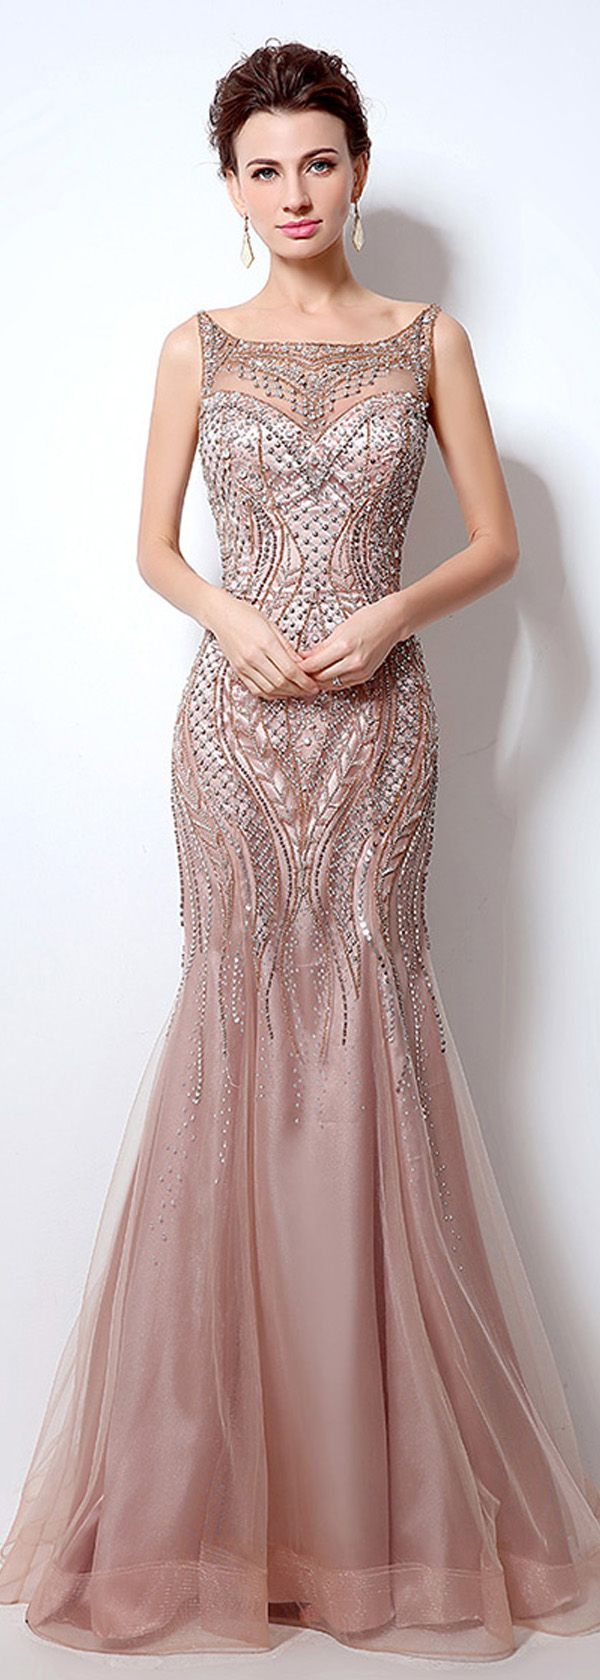 best dress images on pinterest marriage brides and clothes